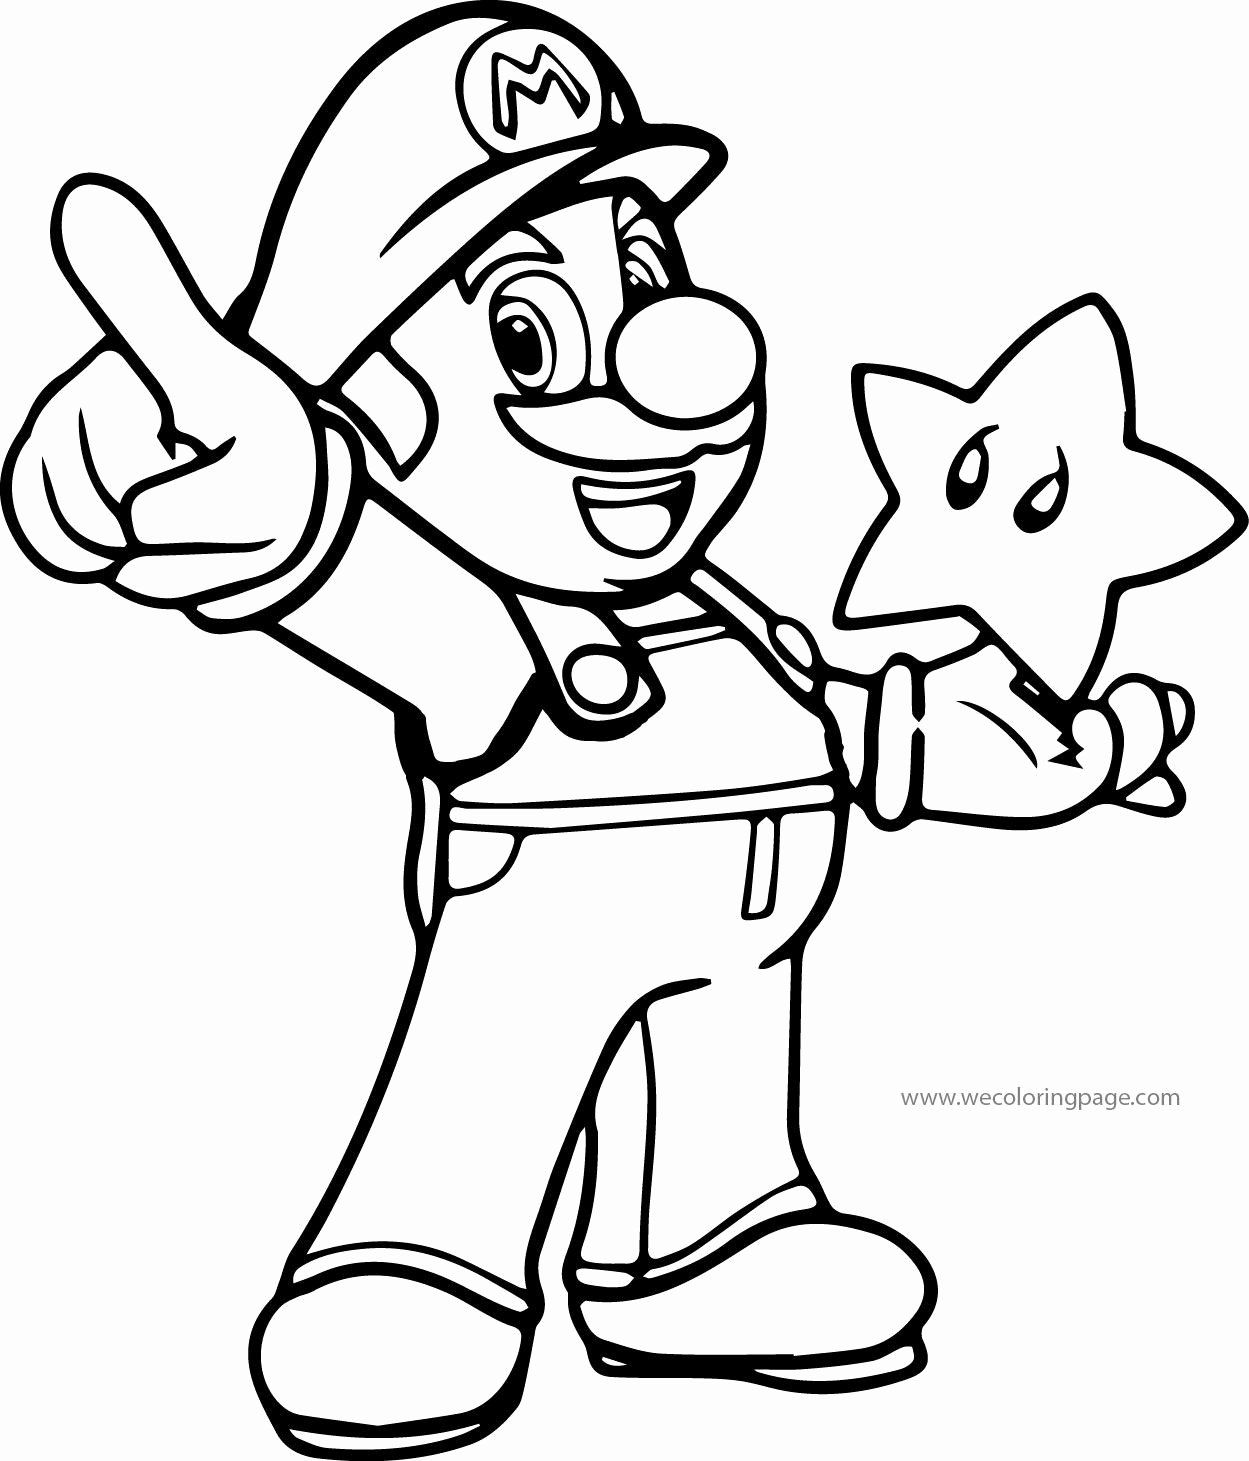 Coloring Letters Video Beautiful Awesome Super Croc Coloring Pages Nocn Super Mario Coloring Pages Super Coloring Pages Mario Coloring Pages [ 1461 x 1249 Pixel ]